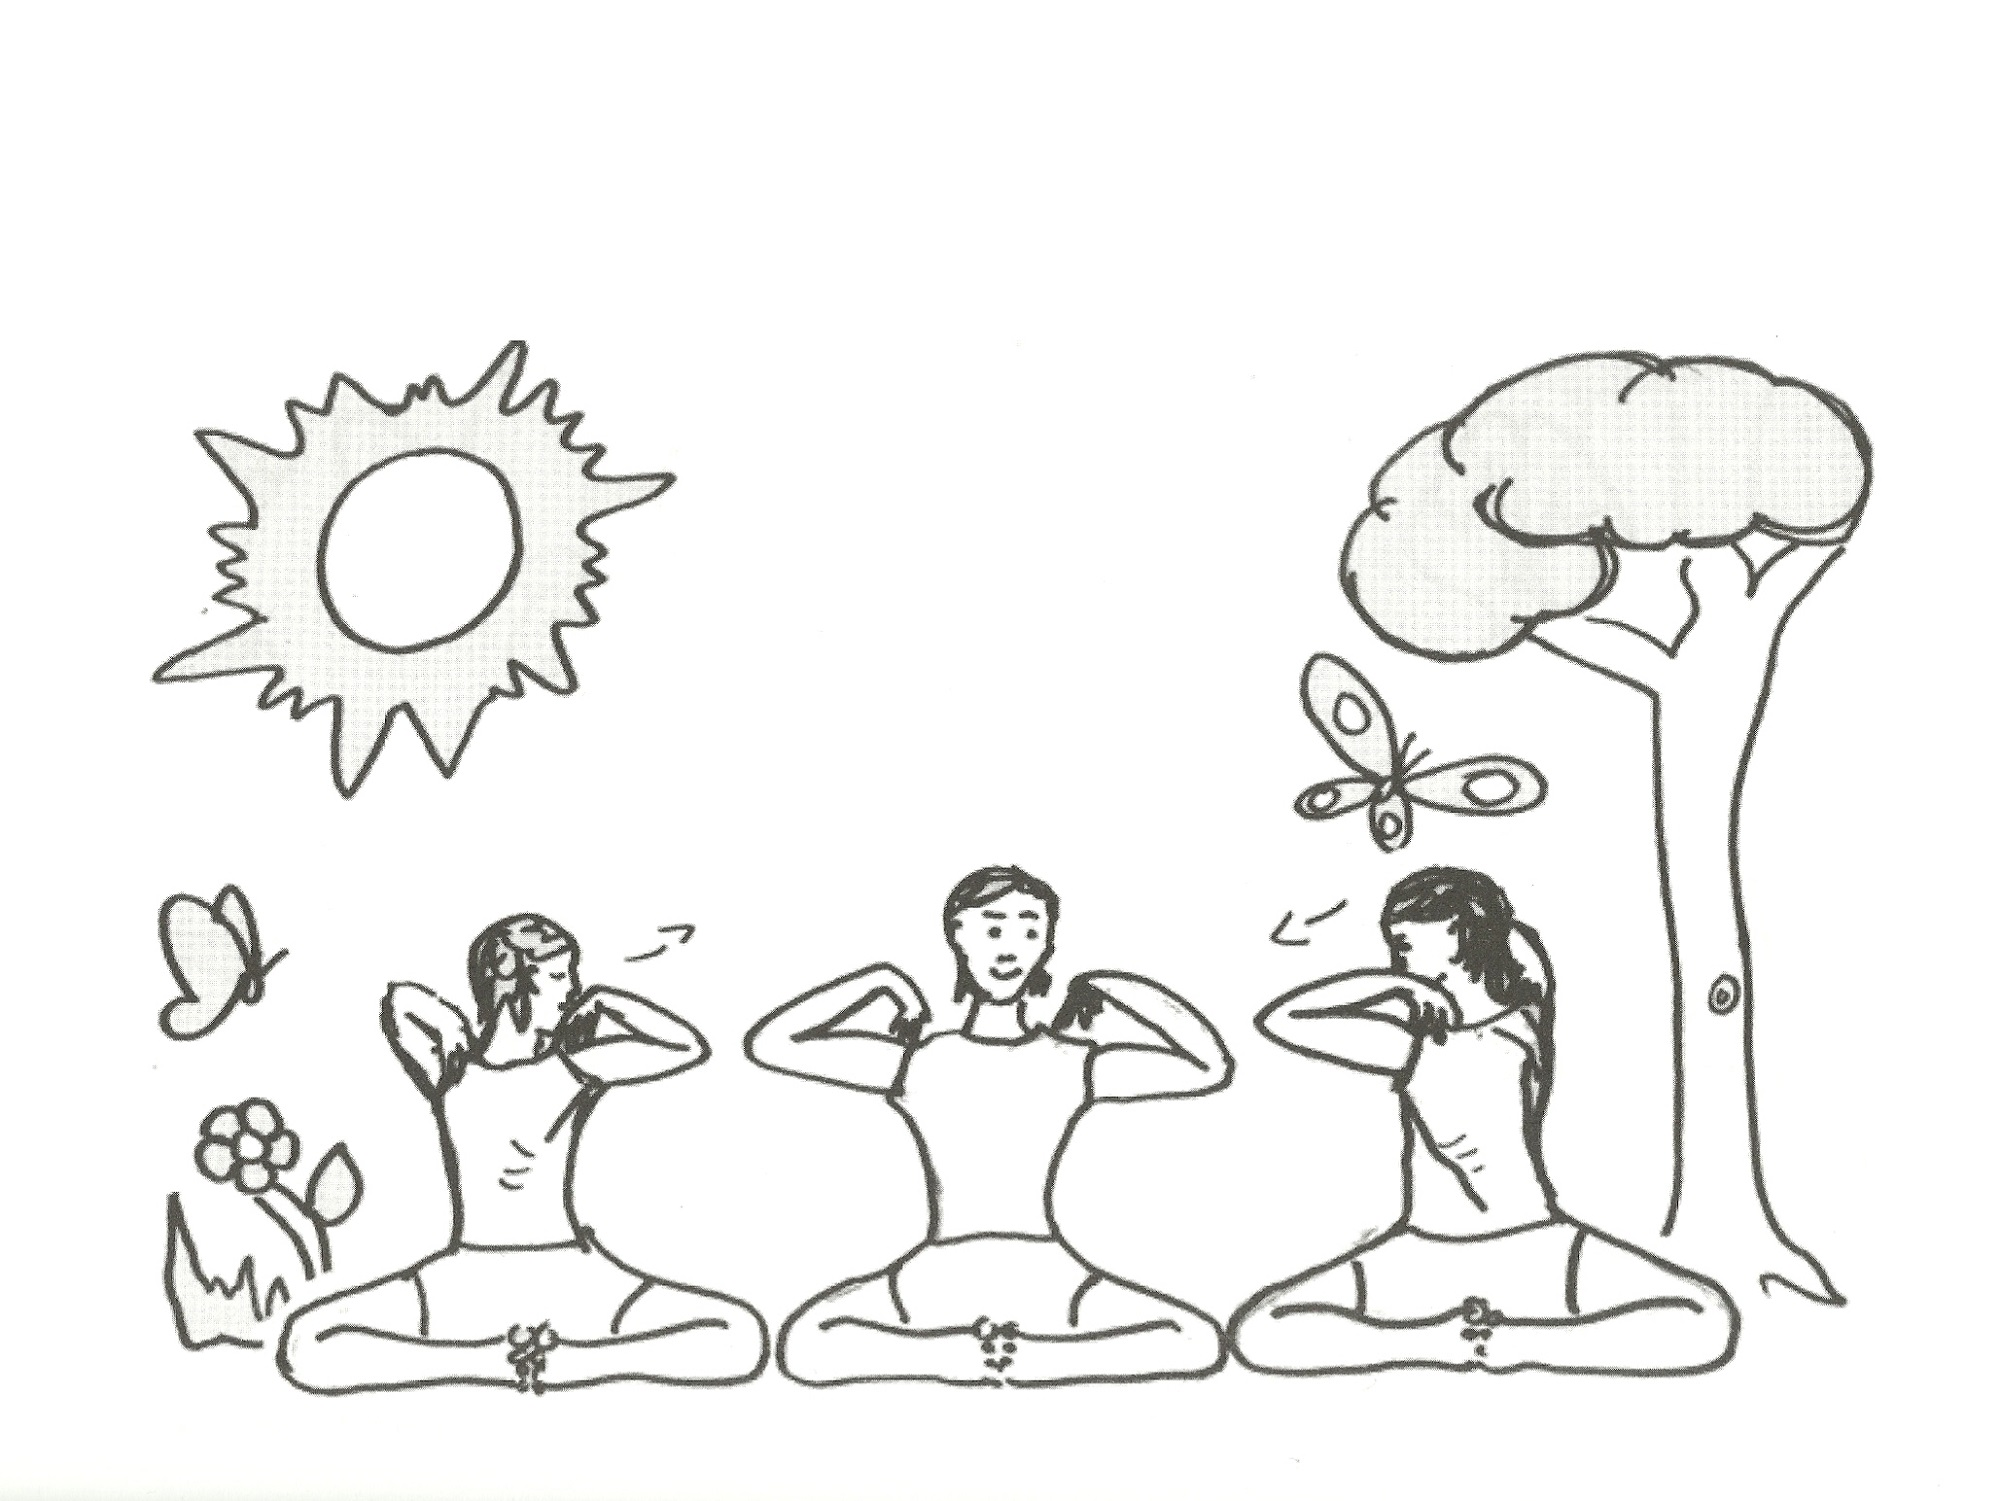 2000x1501 Yoga Coloring Pages For Kids Free Loving Printable